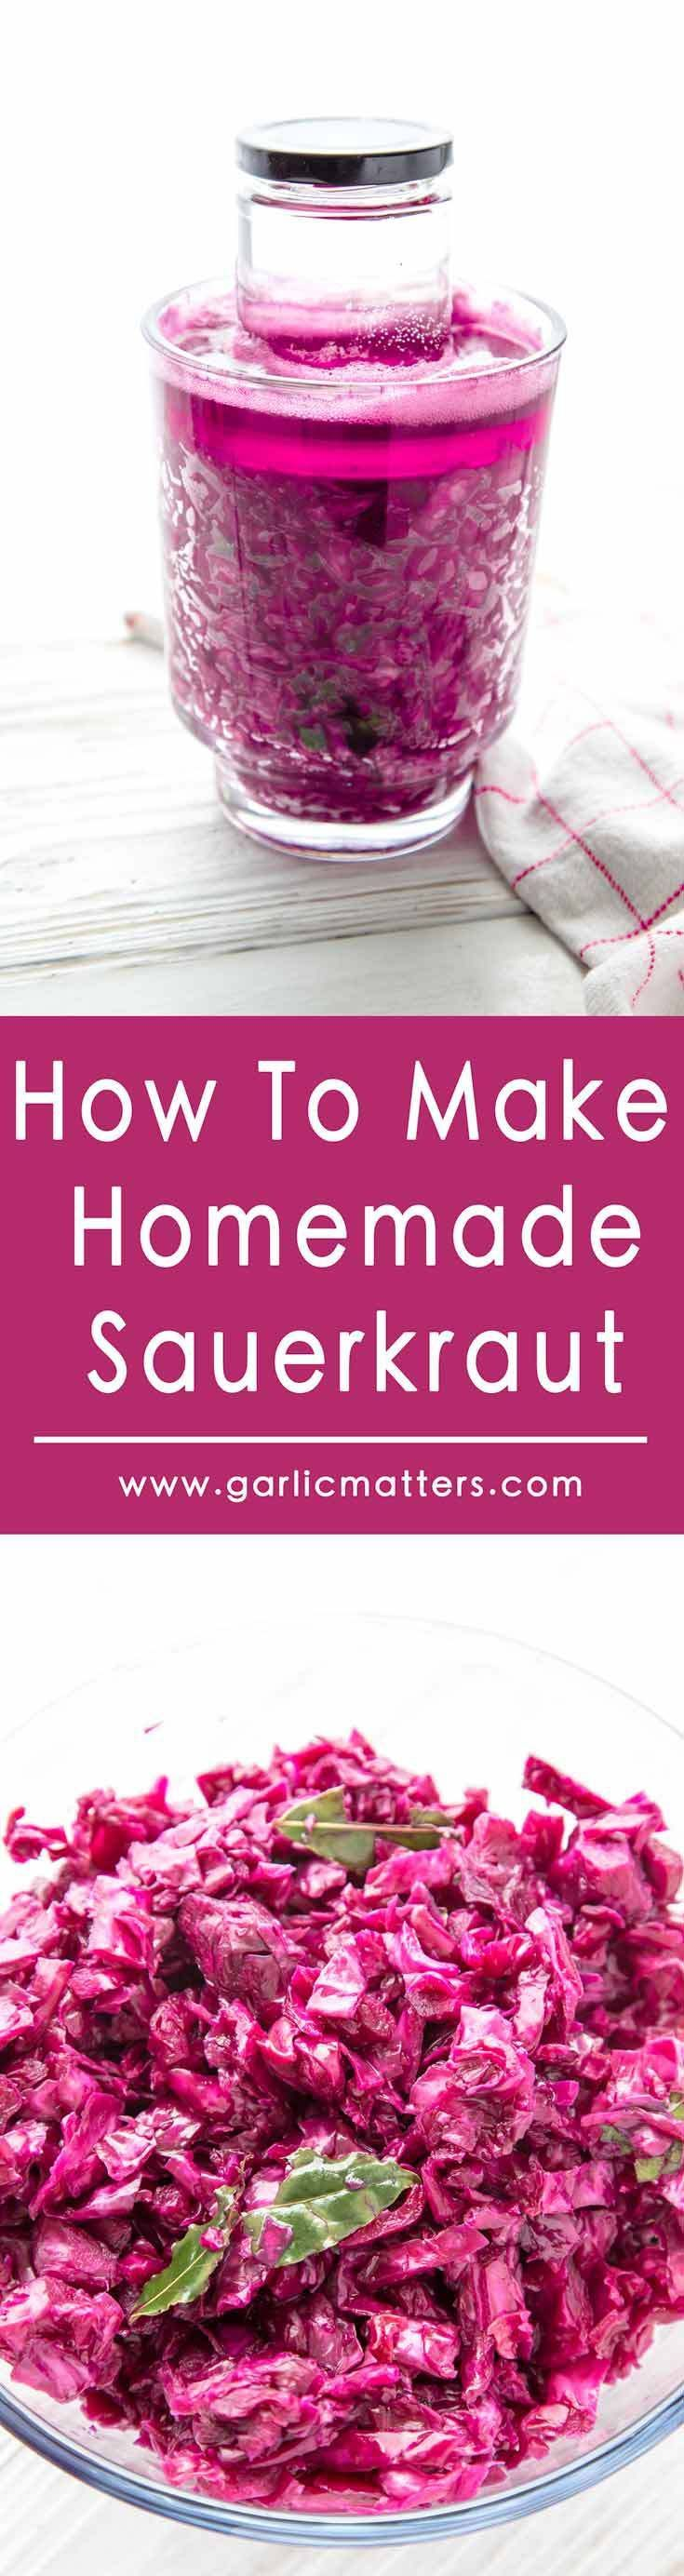 Learn How To Make Homemade Sauerkraut and enjoy its amazing flavour as well as health benefits. All you need is cabbage and salt! Easy recipe and no special skills or equipment required. The fermented sauerkraut stores great for months!